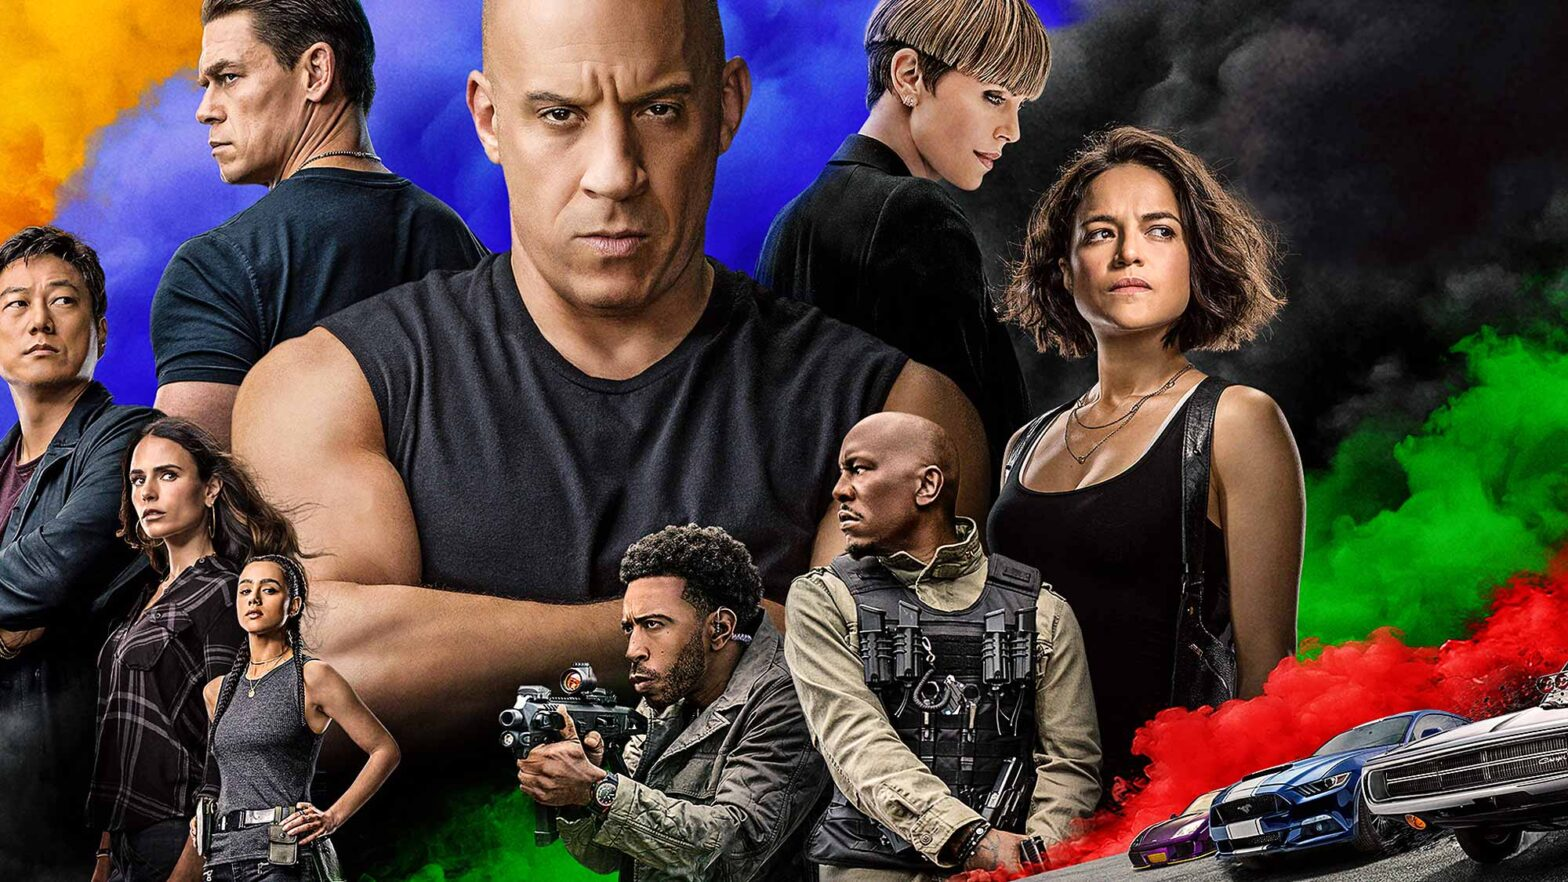 Watch All Eight Fast & Furious Movies for Free